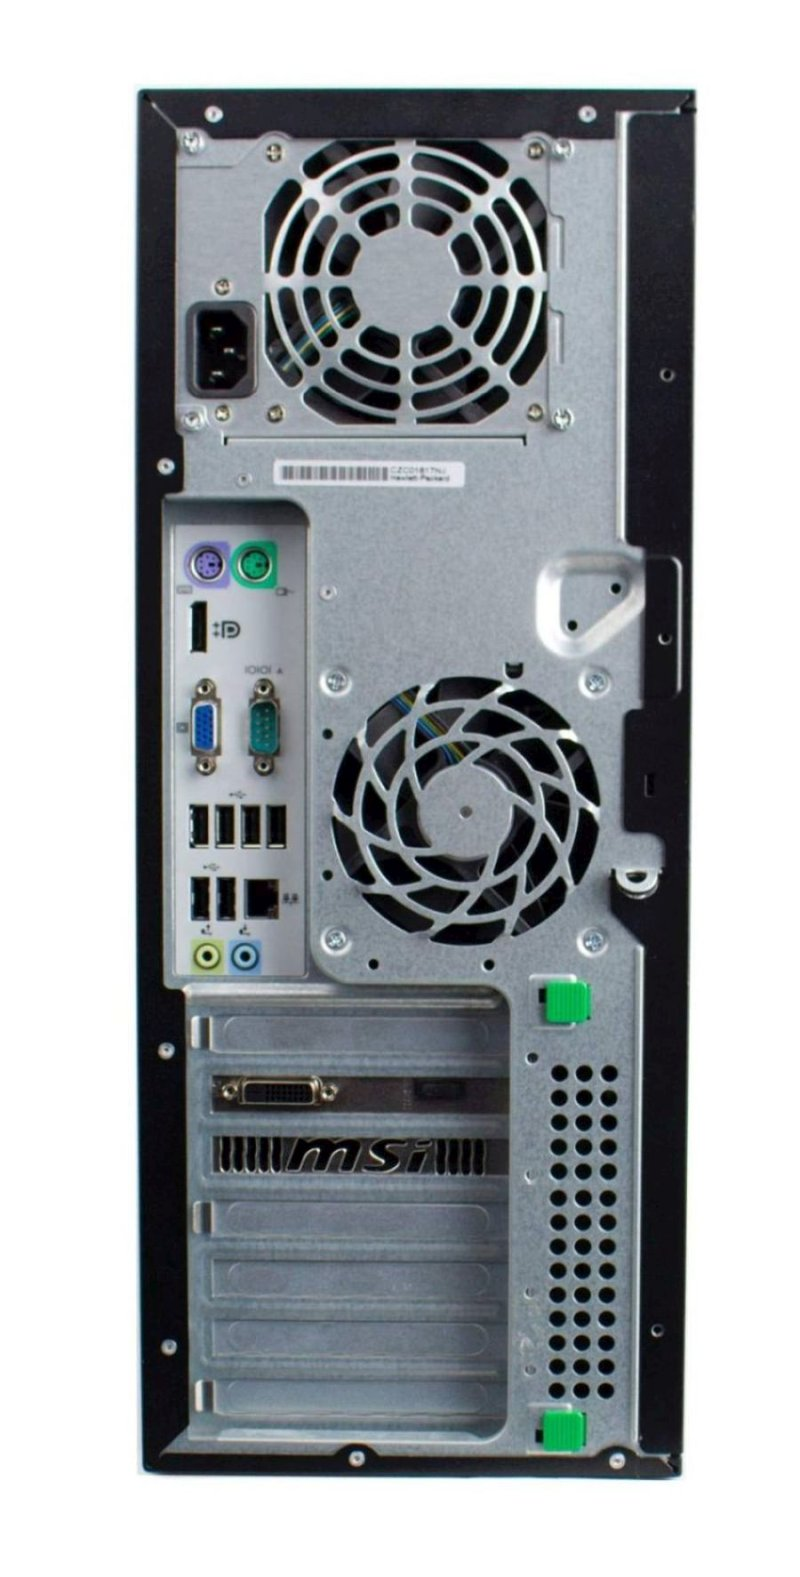 HP Compaq Elite 8100  Convertible Minitower i3-530 ITX 1030 GeForce